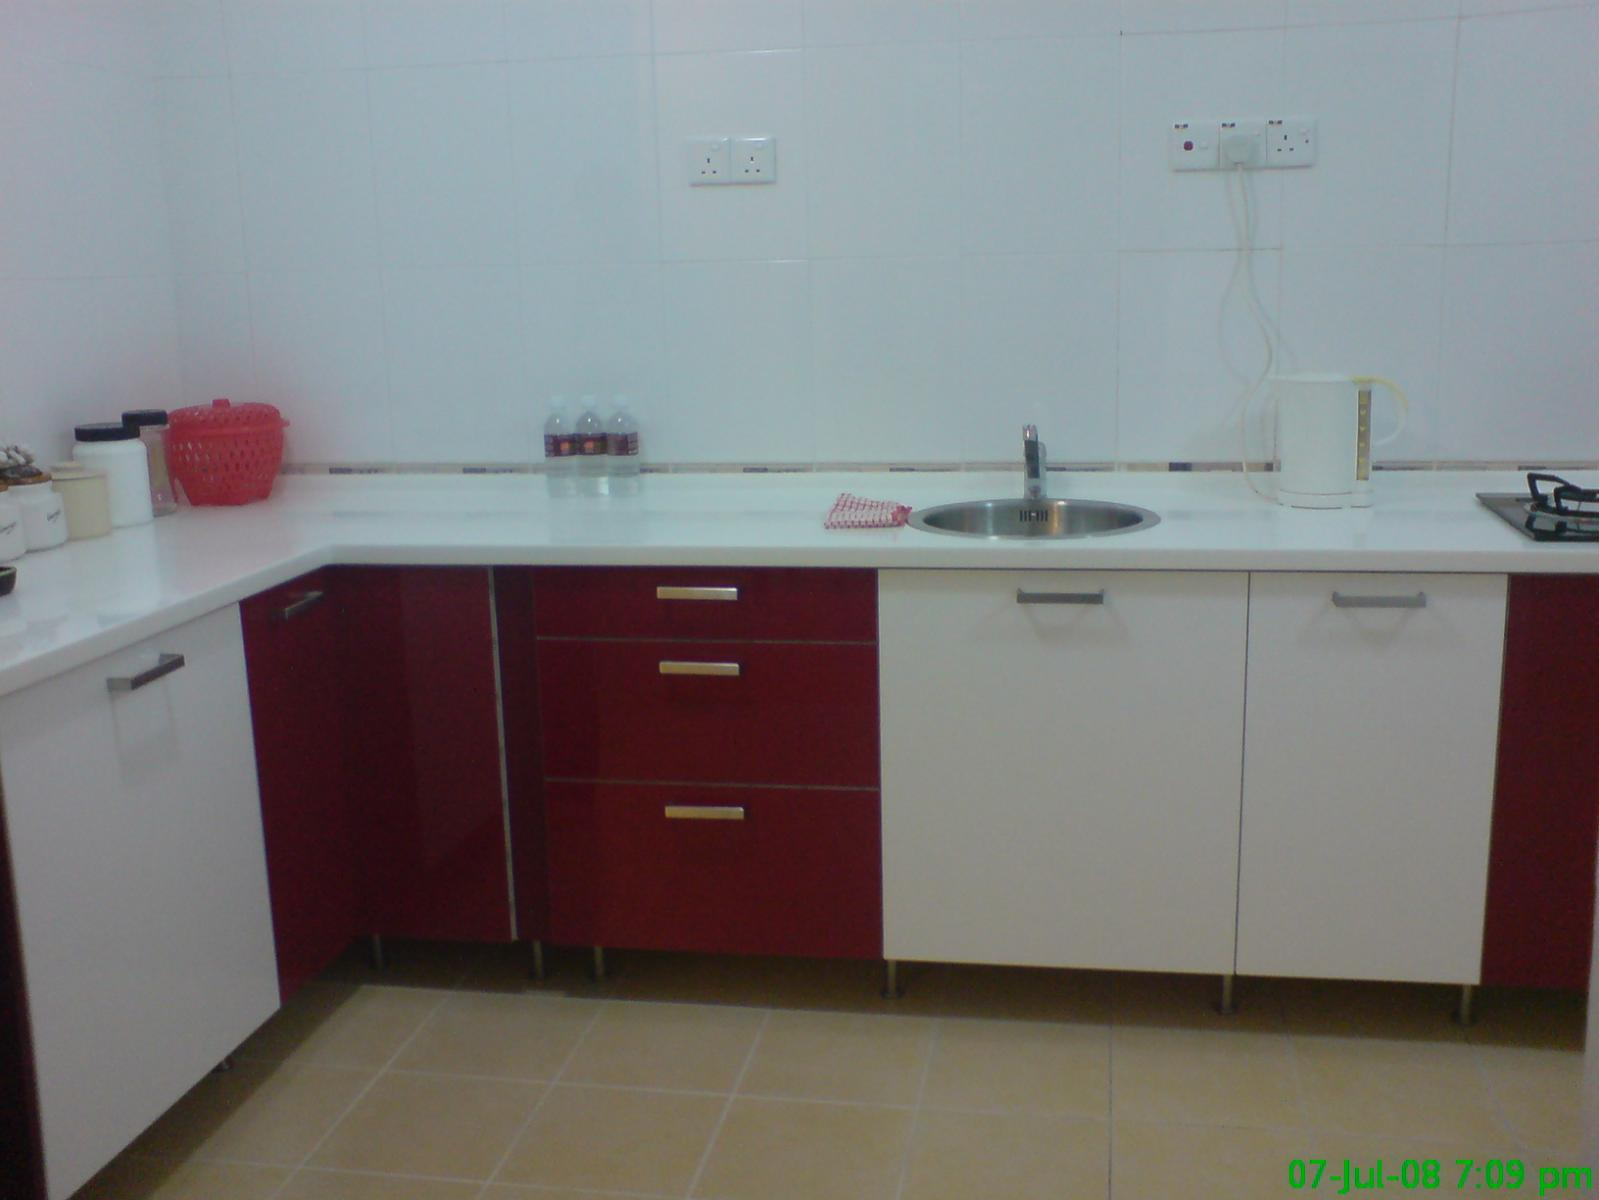 All about kitchen cabinets page 6 setting up home for Kitchen cabinets malaysia